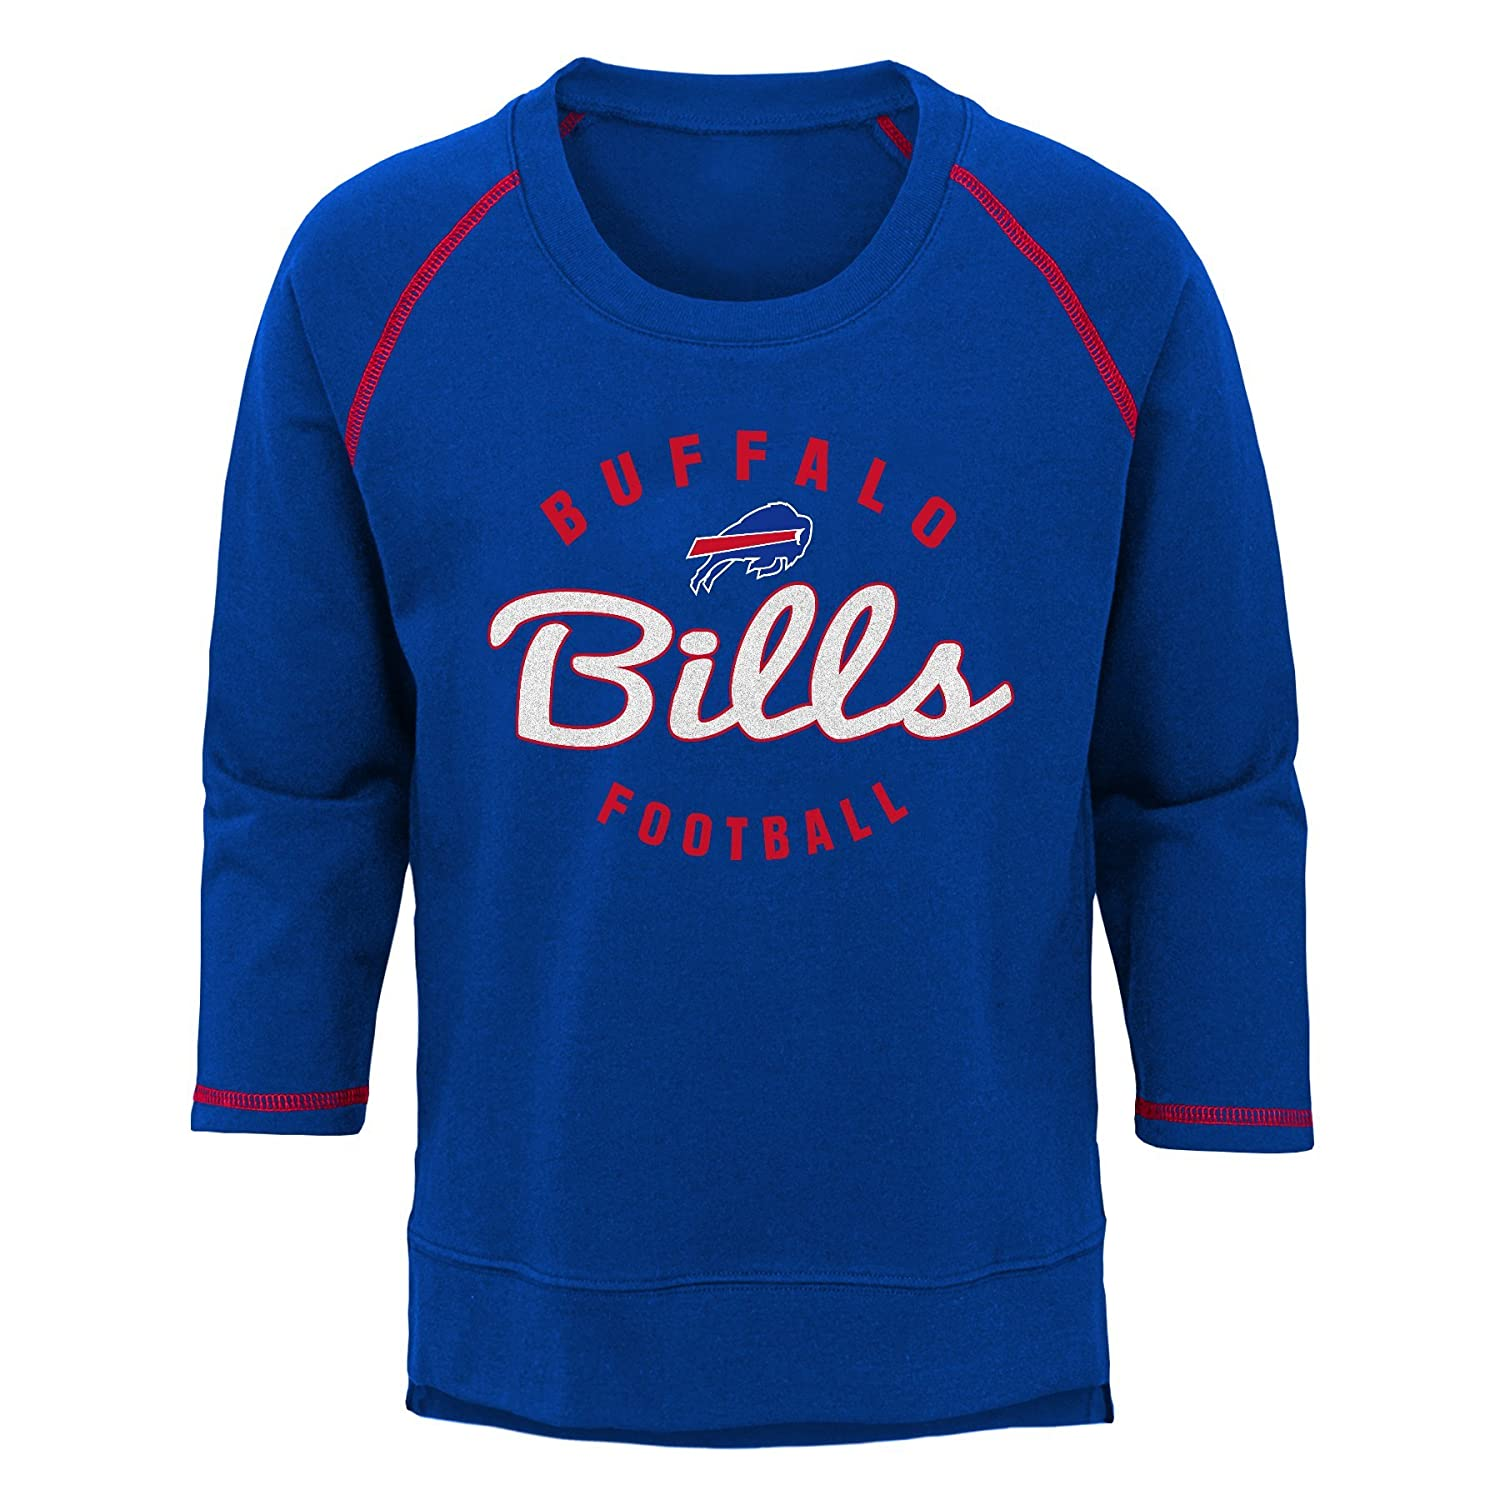 14 Youth Large NFL Buffalo Bills Youth Boys Overthrow Pullover Top Royal